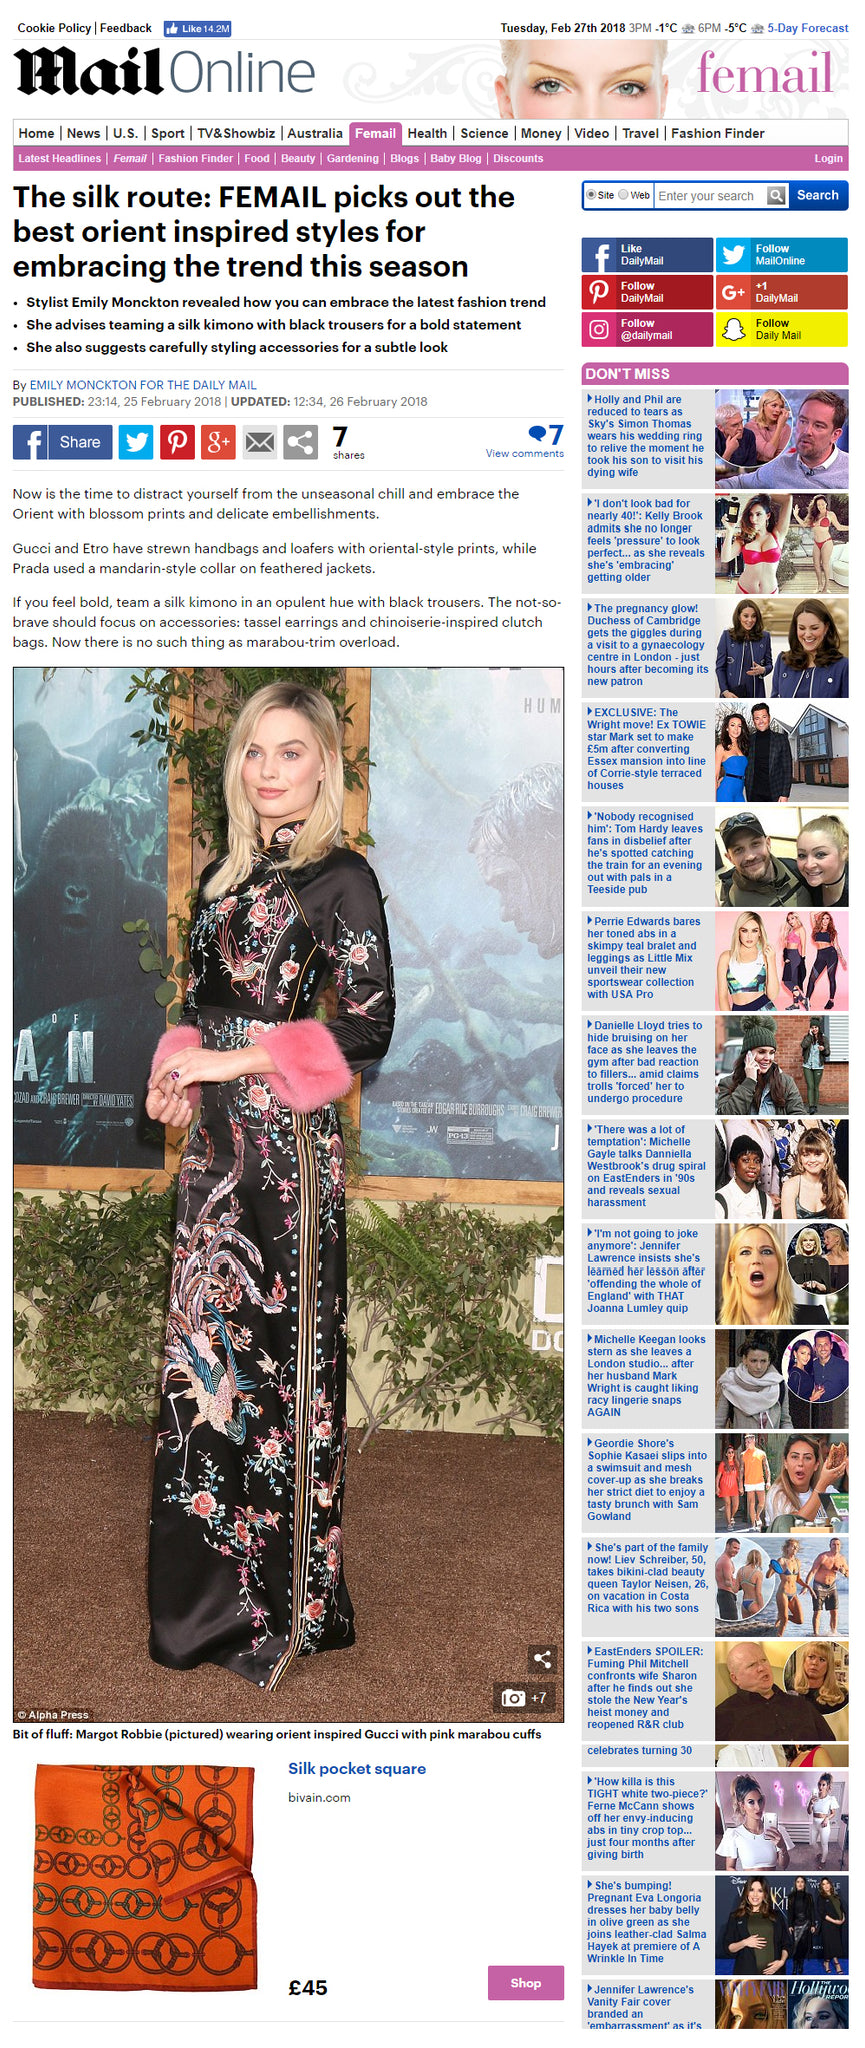 Bivain pocket square on dailymail.co.uk